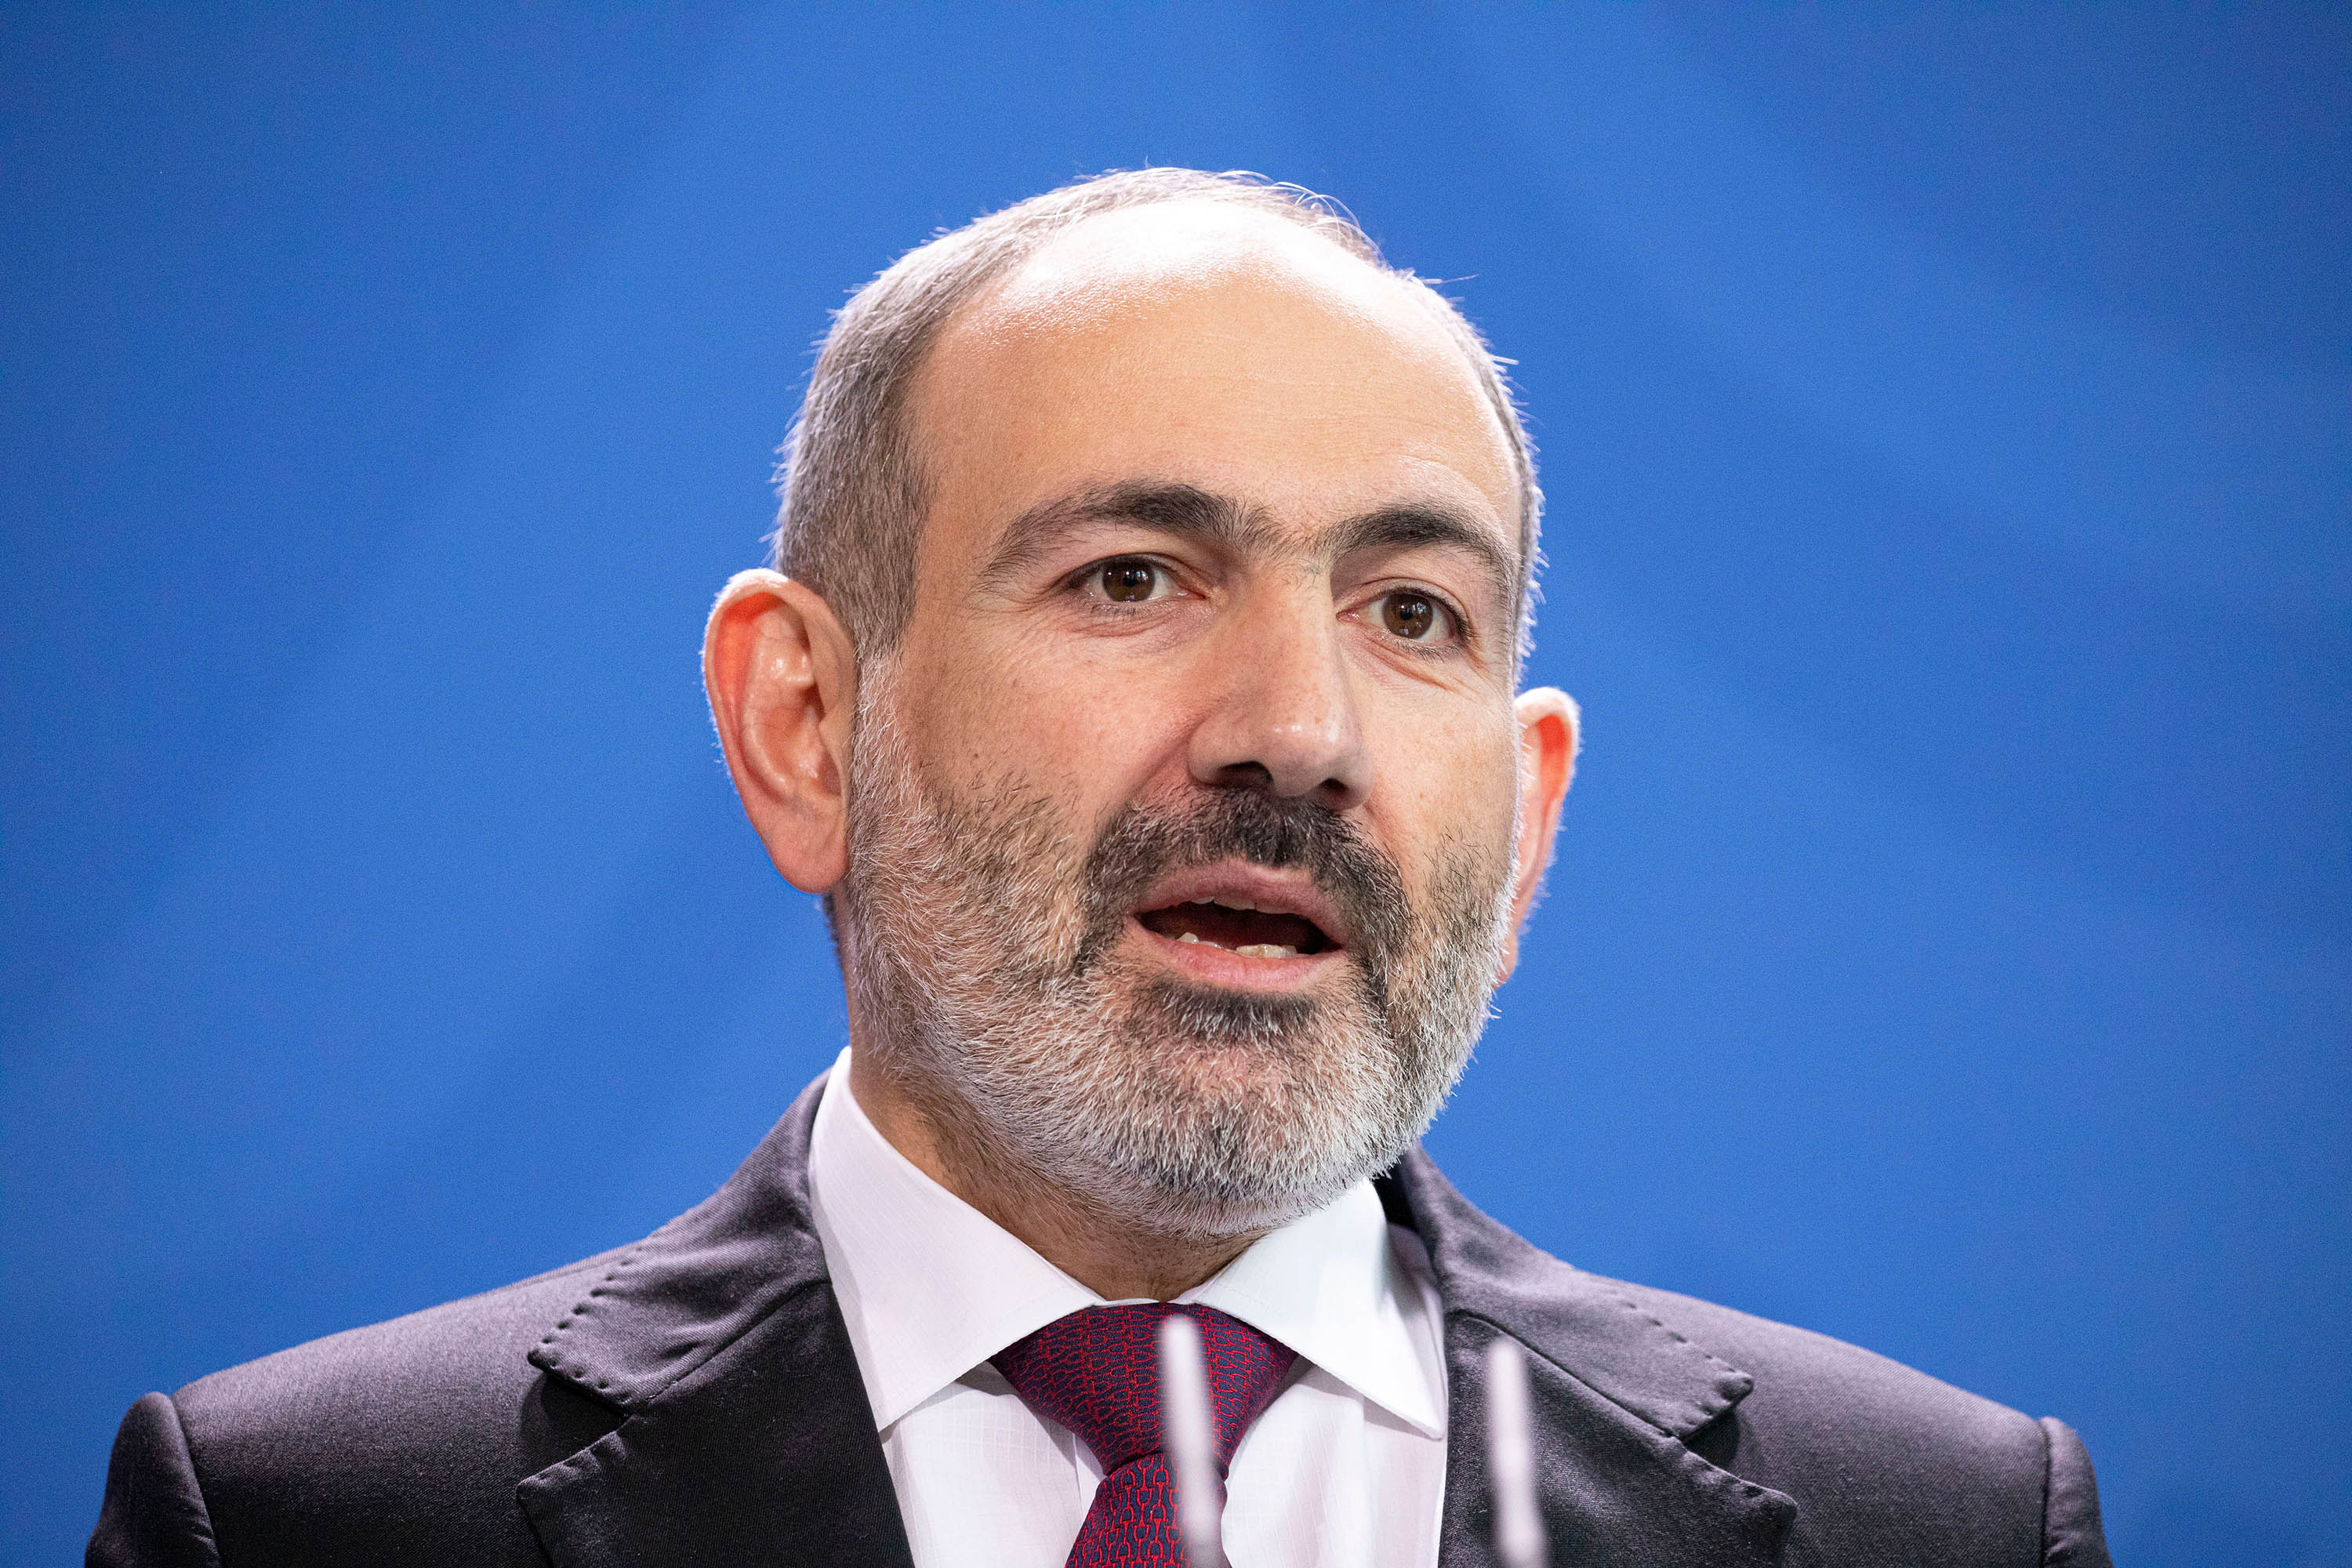 Prime Minister of Armenia Nikol Pashinyan is pictured in Berlin, Germany, on February 13.